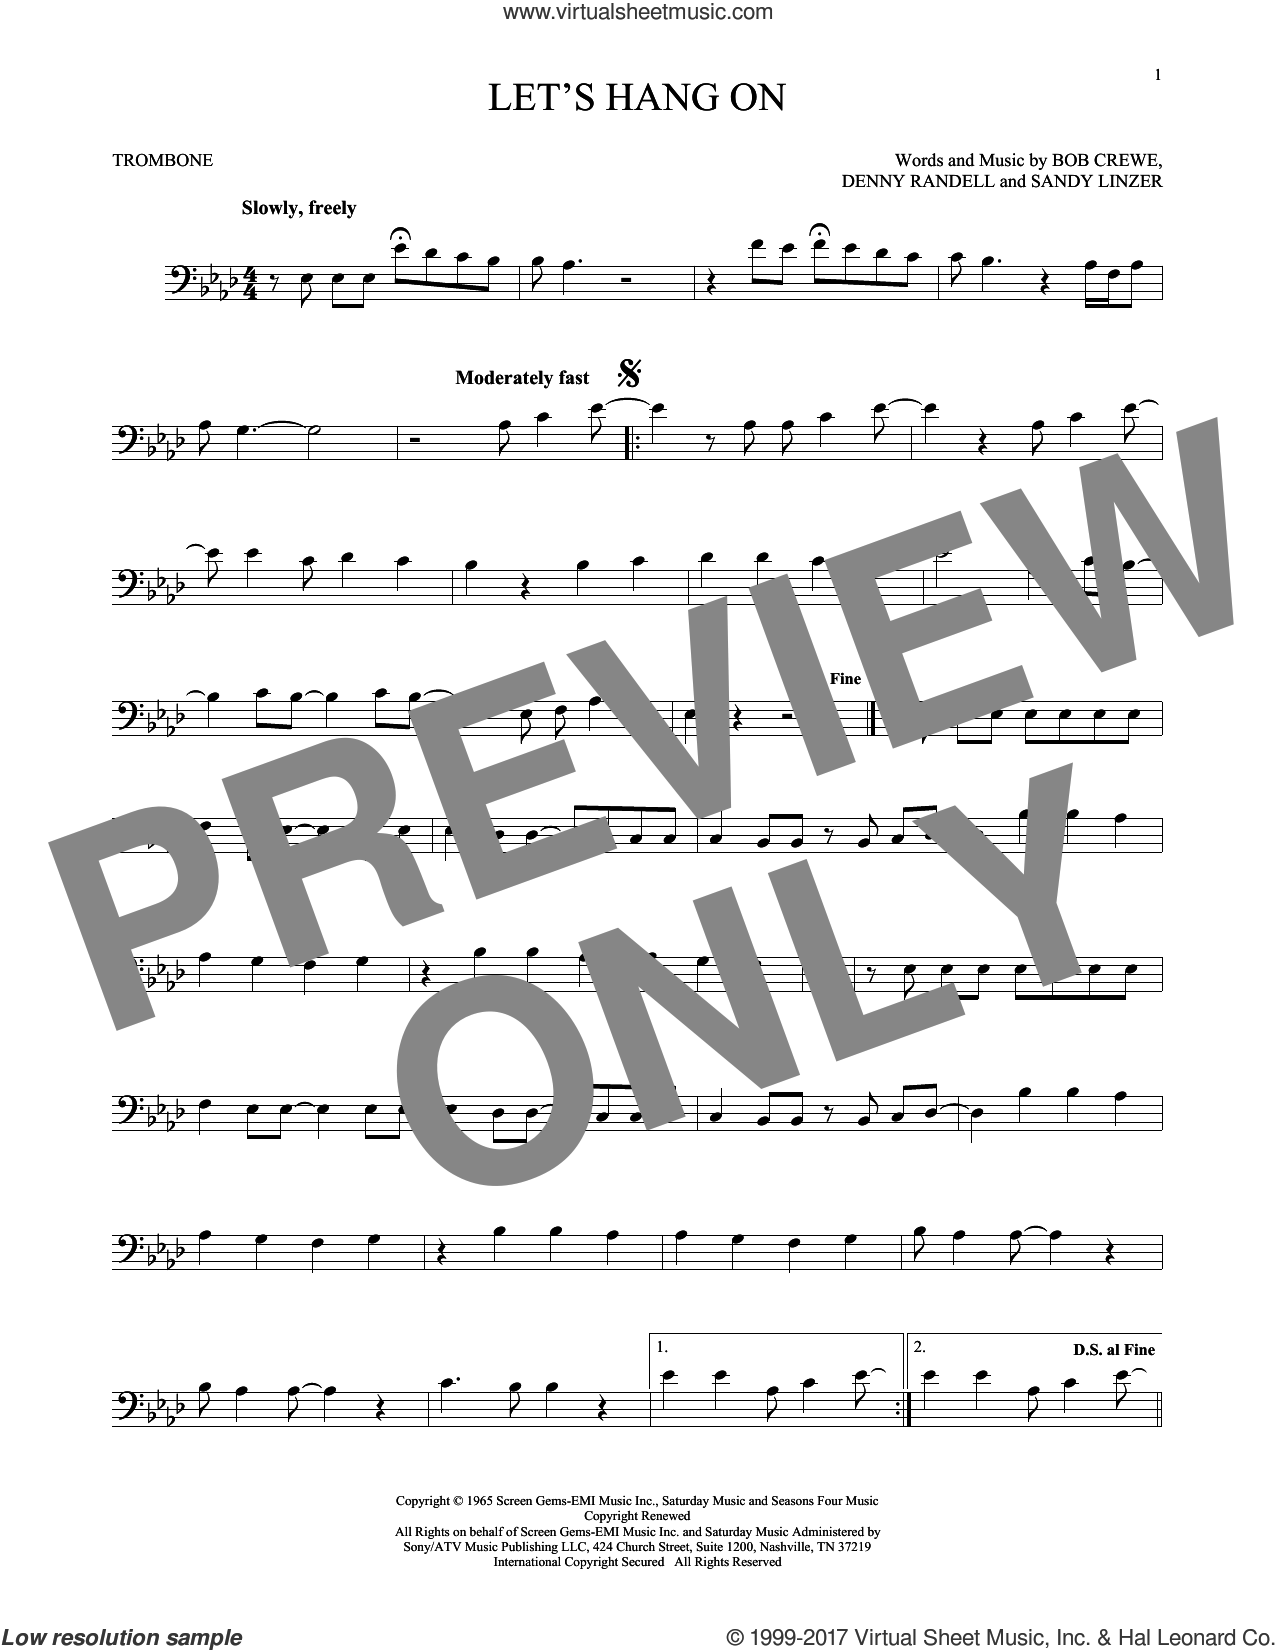 Let's Hang On sheet music for trombone solo by The 4 Seasons, Bob Crewe, Denny Randell and Sandy Linzer, intermediate skill level